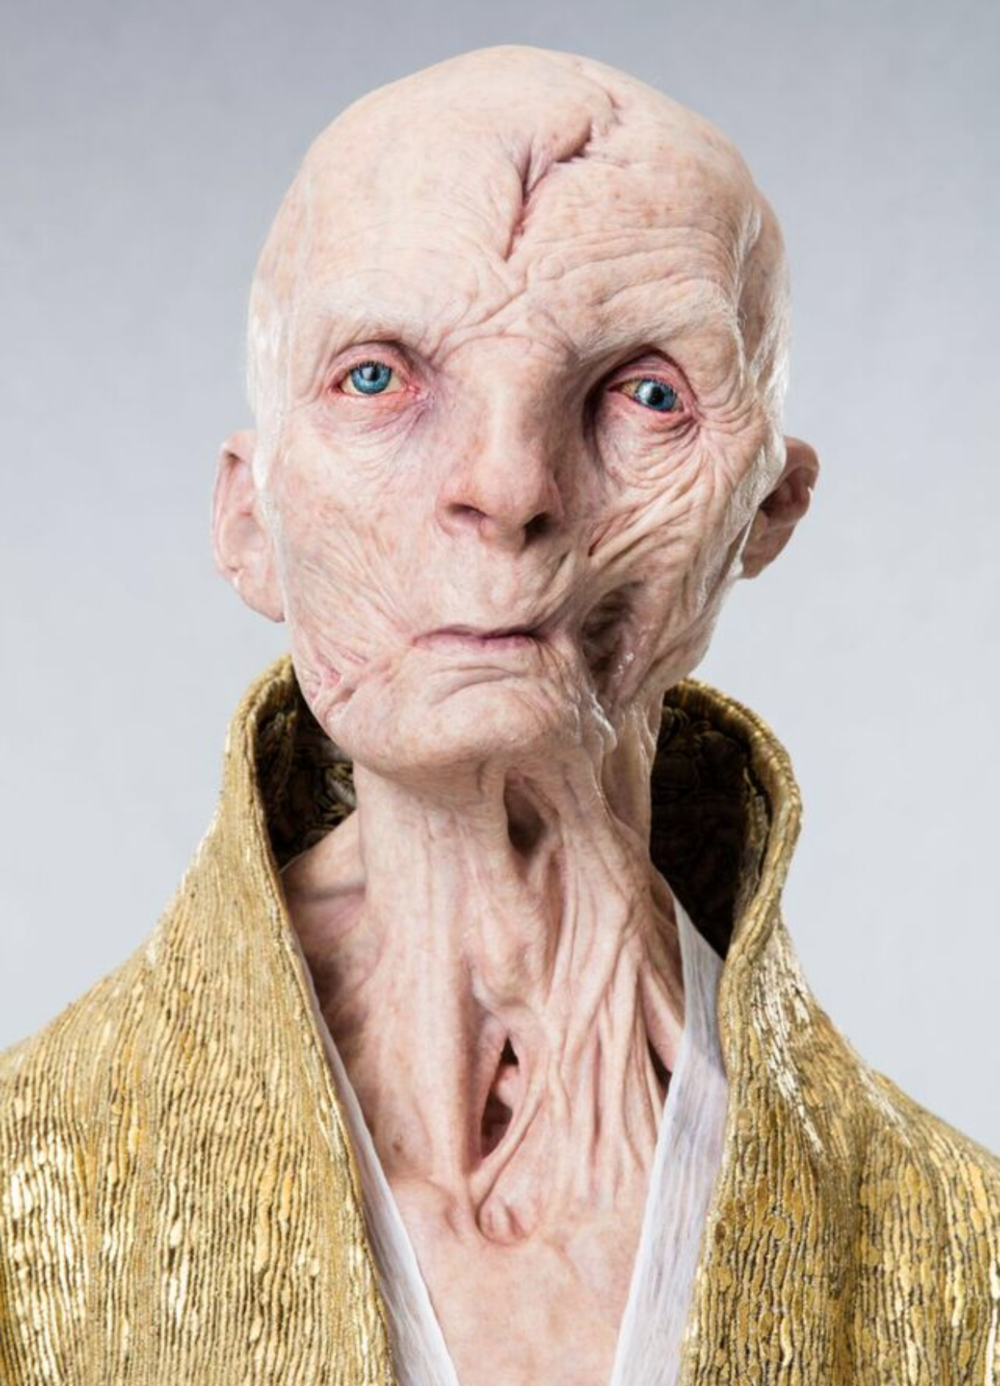 This is a copyrighted promotional image of Snoke. It is believed that the copyright holder has granted permission for use under the fair use provision of United States copyright law. Source: Empire Magazine via Wookieepedia